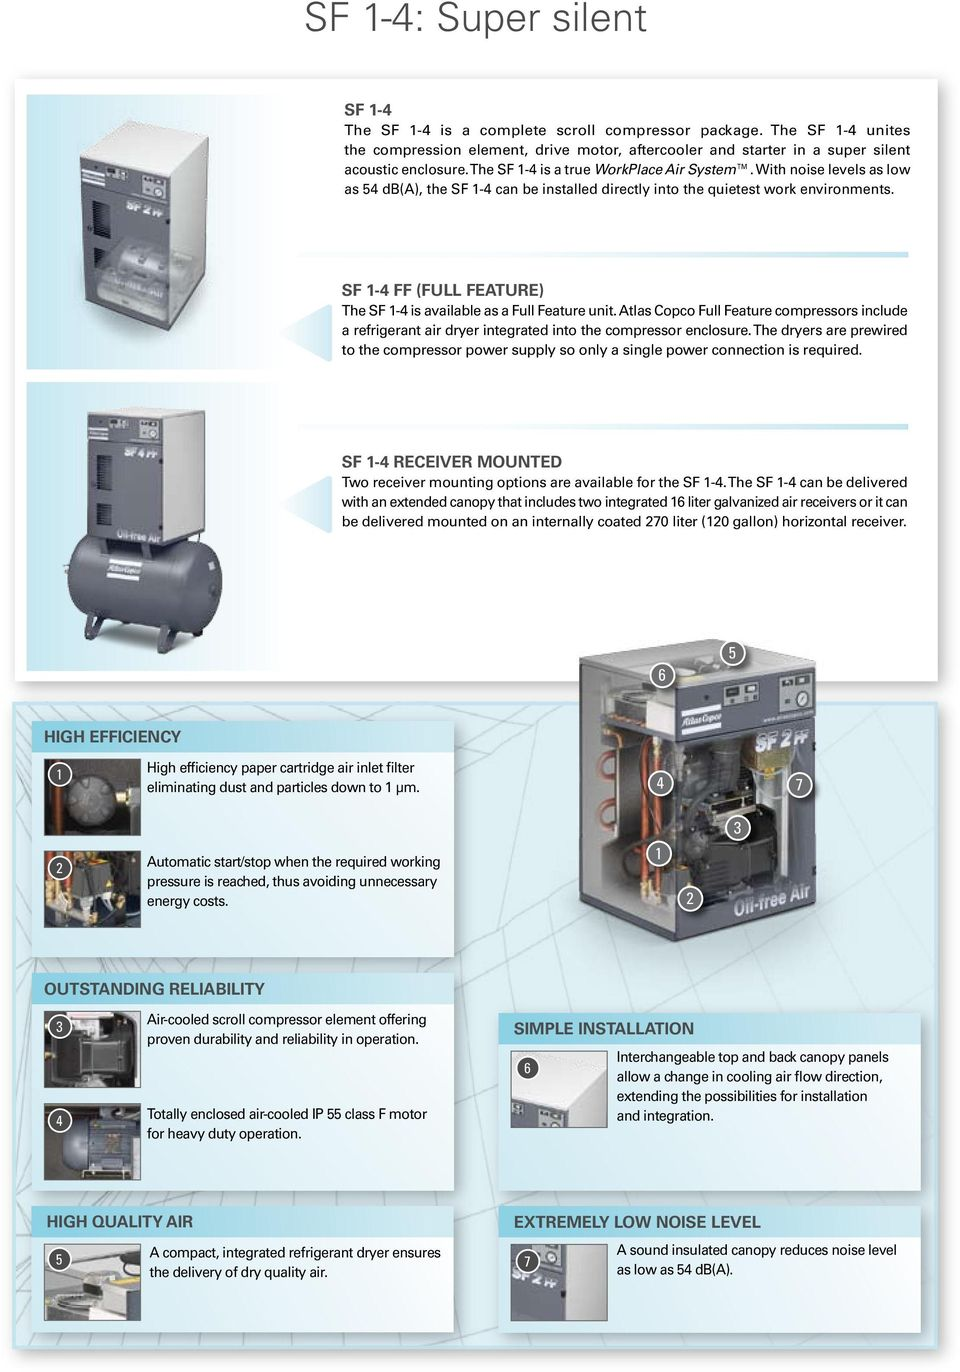 SF - FF (FULL FEATURE) The SF - is available as a Full Feature unit. Atlas Copco Full Feature compressors include a refrigerant air dryer integrated into the compressor enclosure.